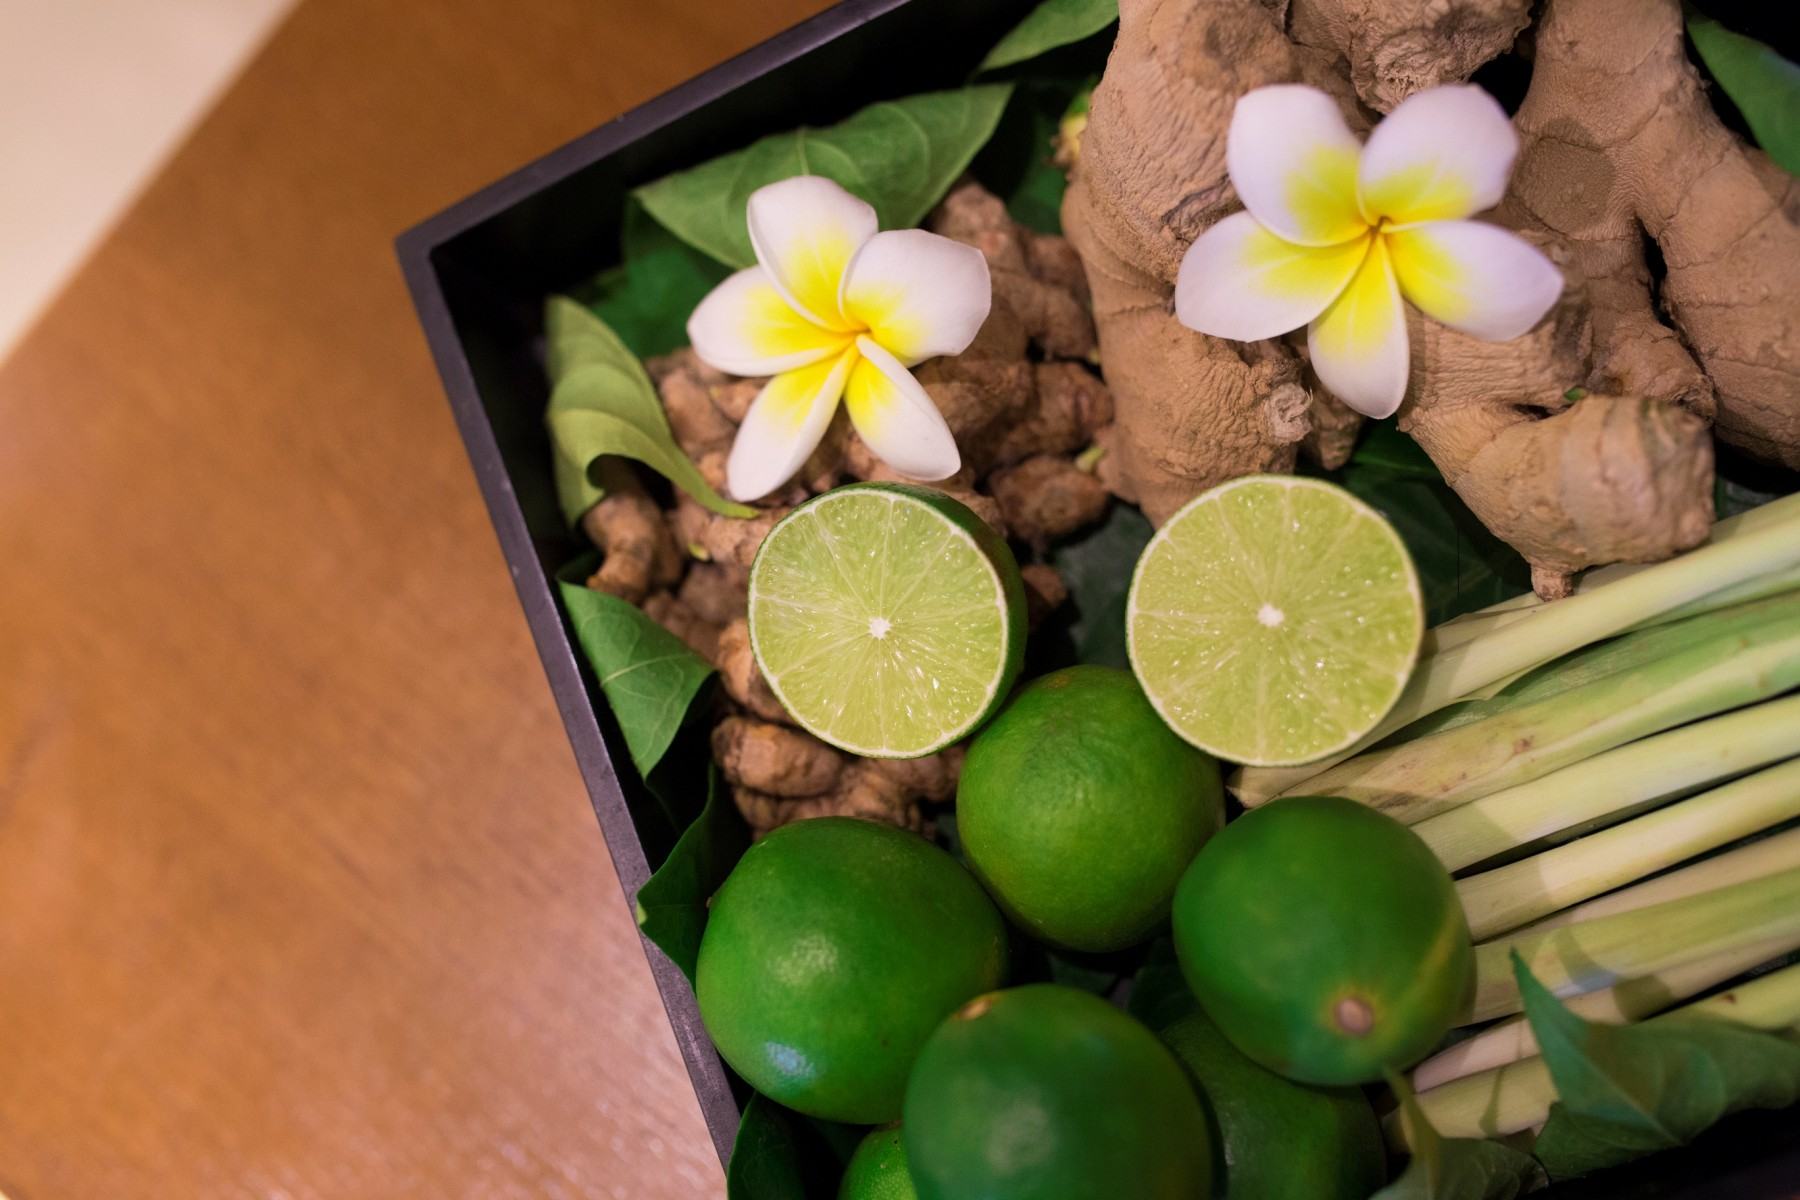 Spa experience with a mix of traditional and modern treatments